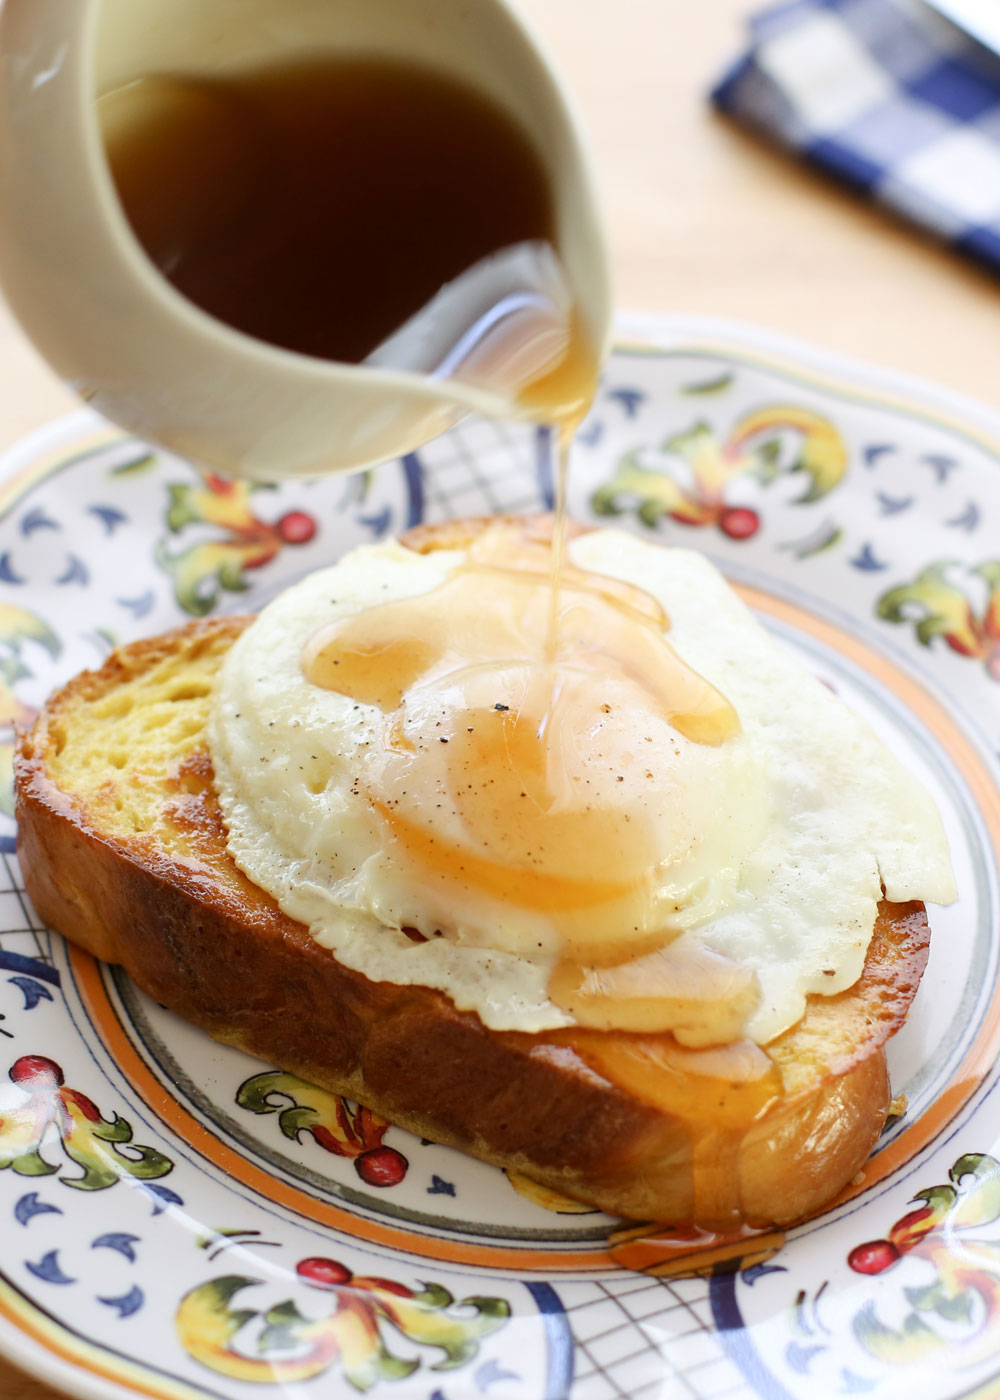 Brioche French Toast with Hot Maple Syrup recipe by Barefeet In The Kitchen